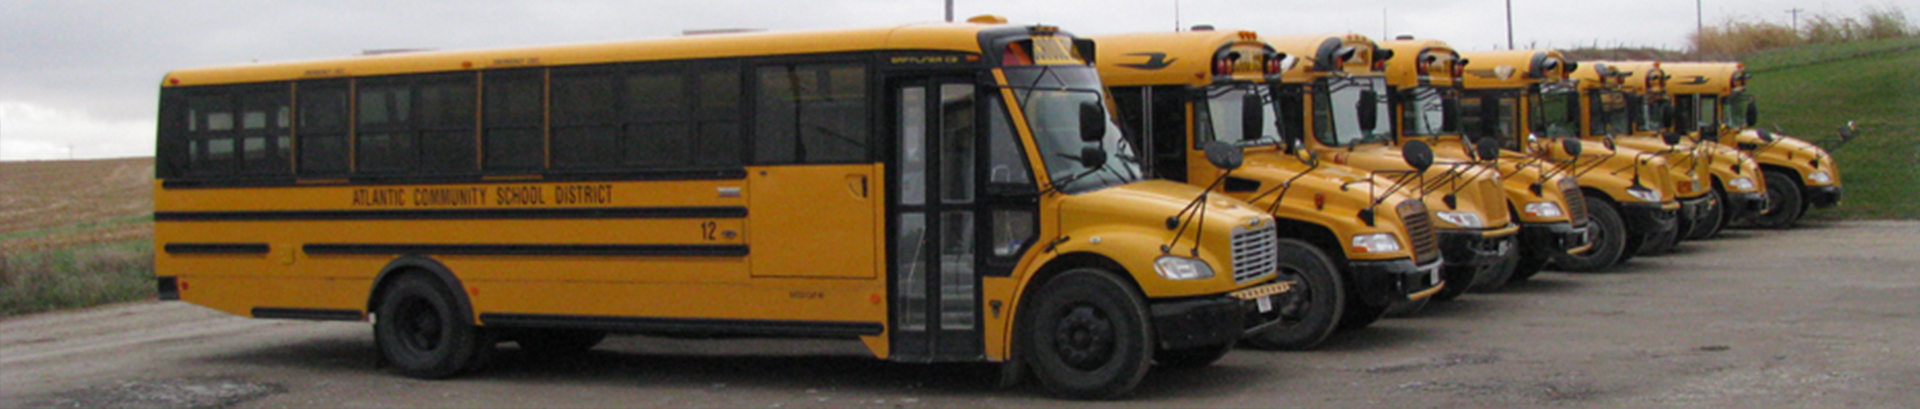 District Banner School Buses